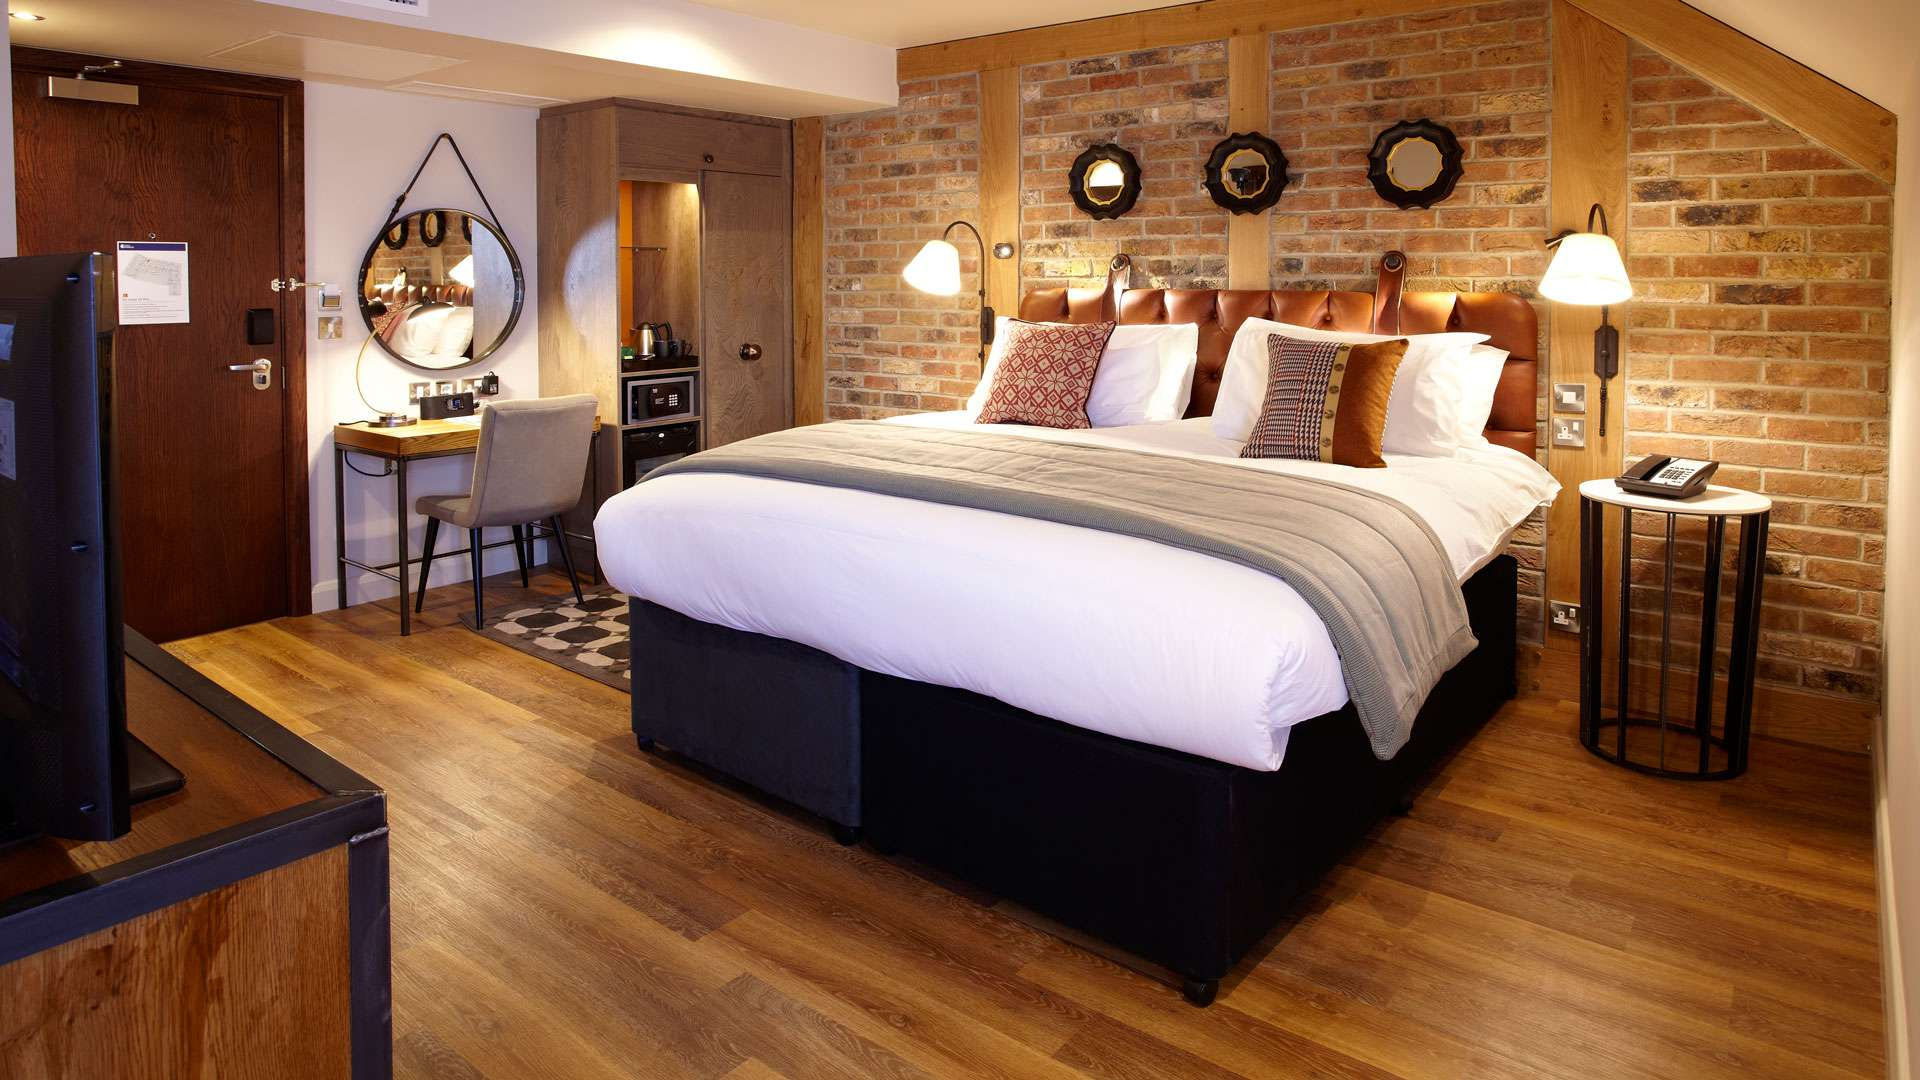 Hotel Indigo York - Boutique Hotel in the heart of York